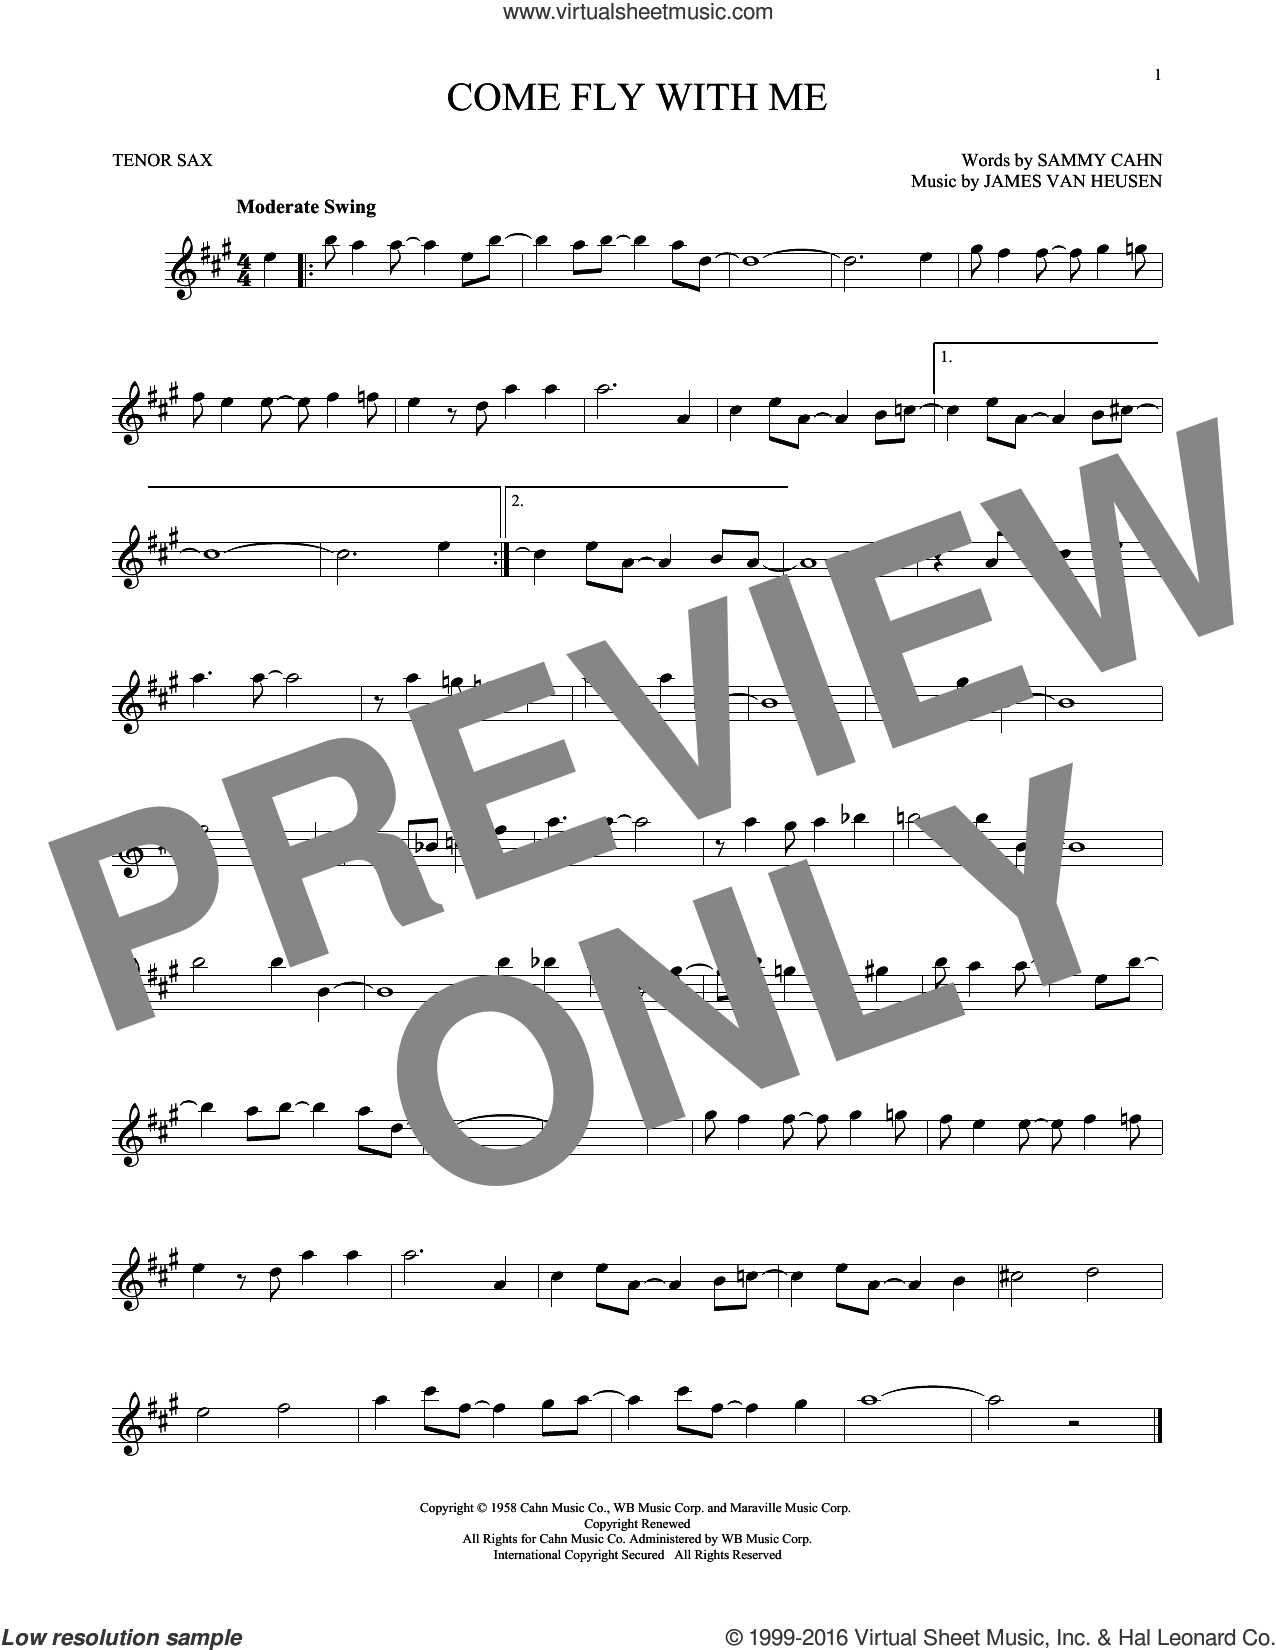 Come Fly With Me sheet music for tenor saxophone solo by Sammy Cahn and Jimmy van Heusen. Score Image Preview.